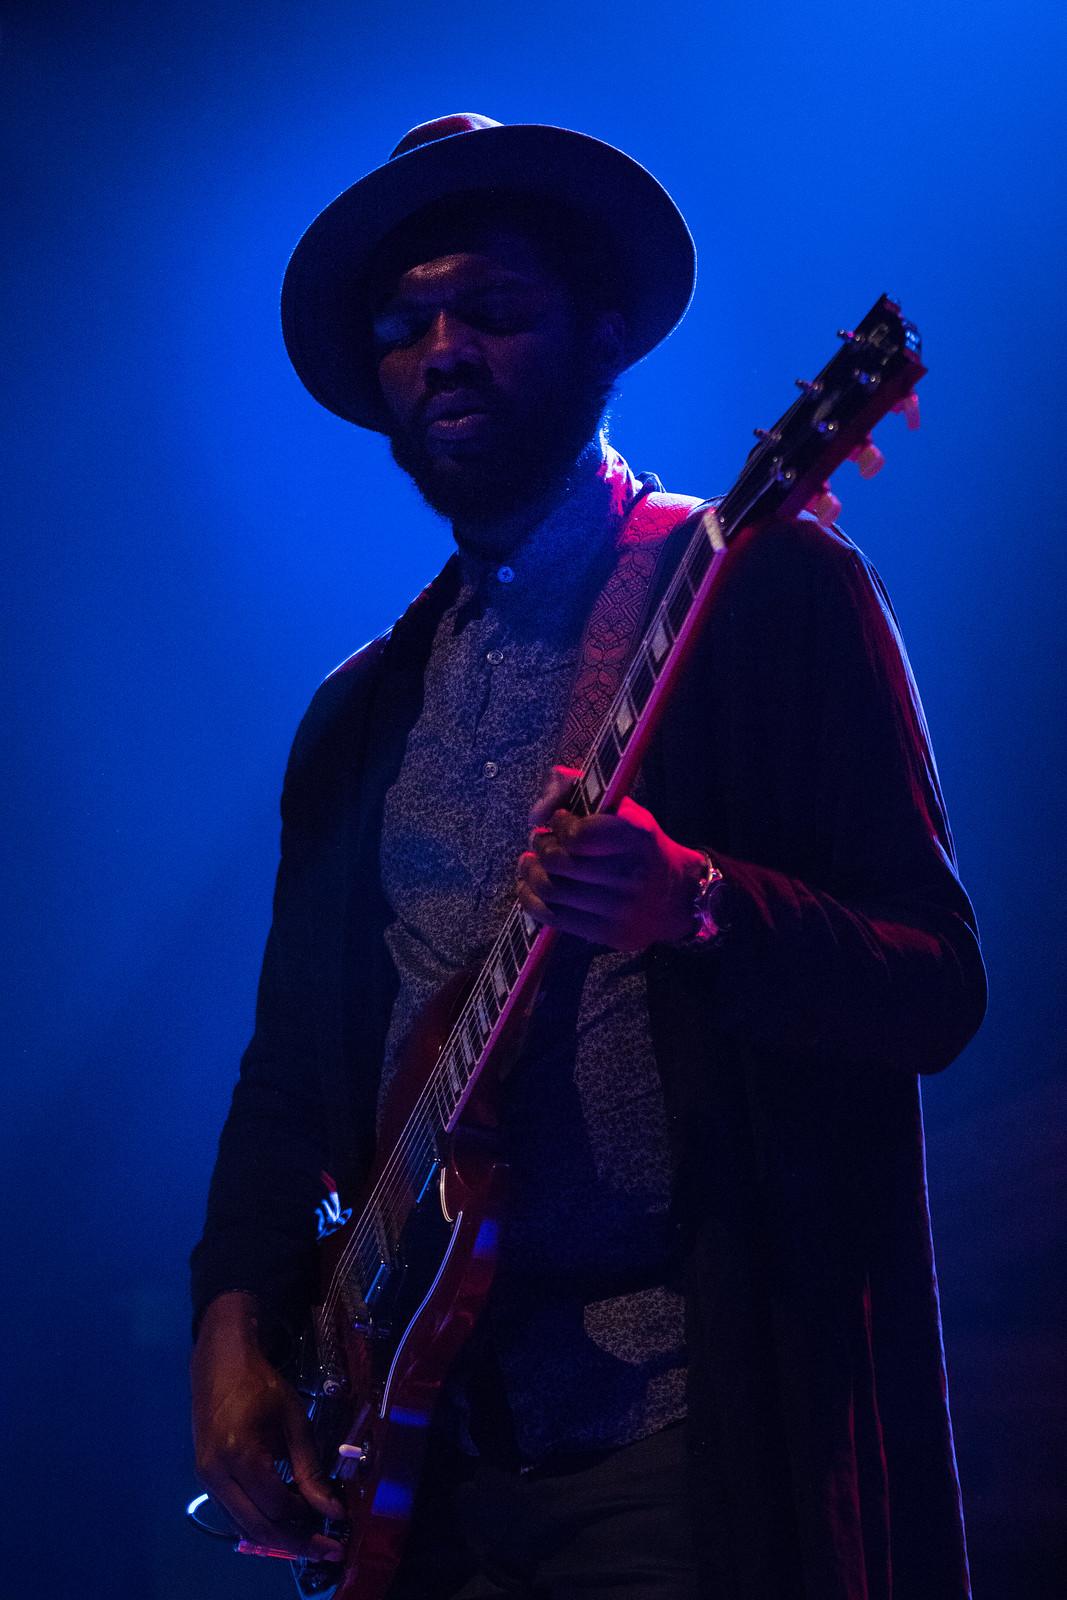 Gary Clark Jr - Denver concert photos